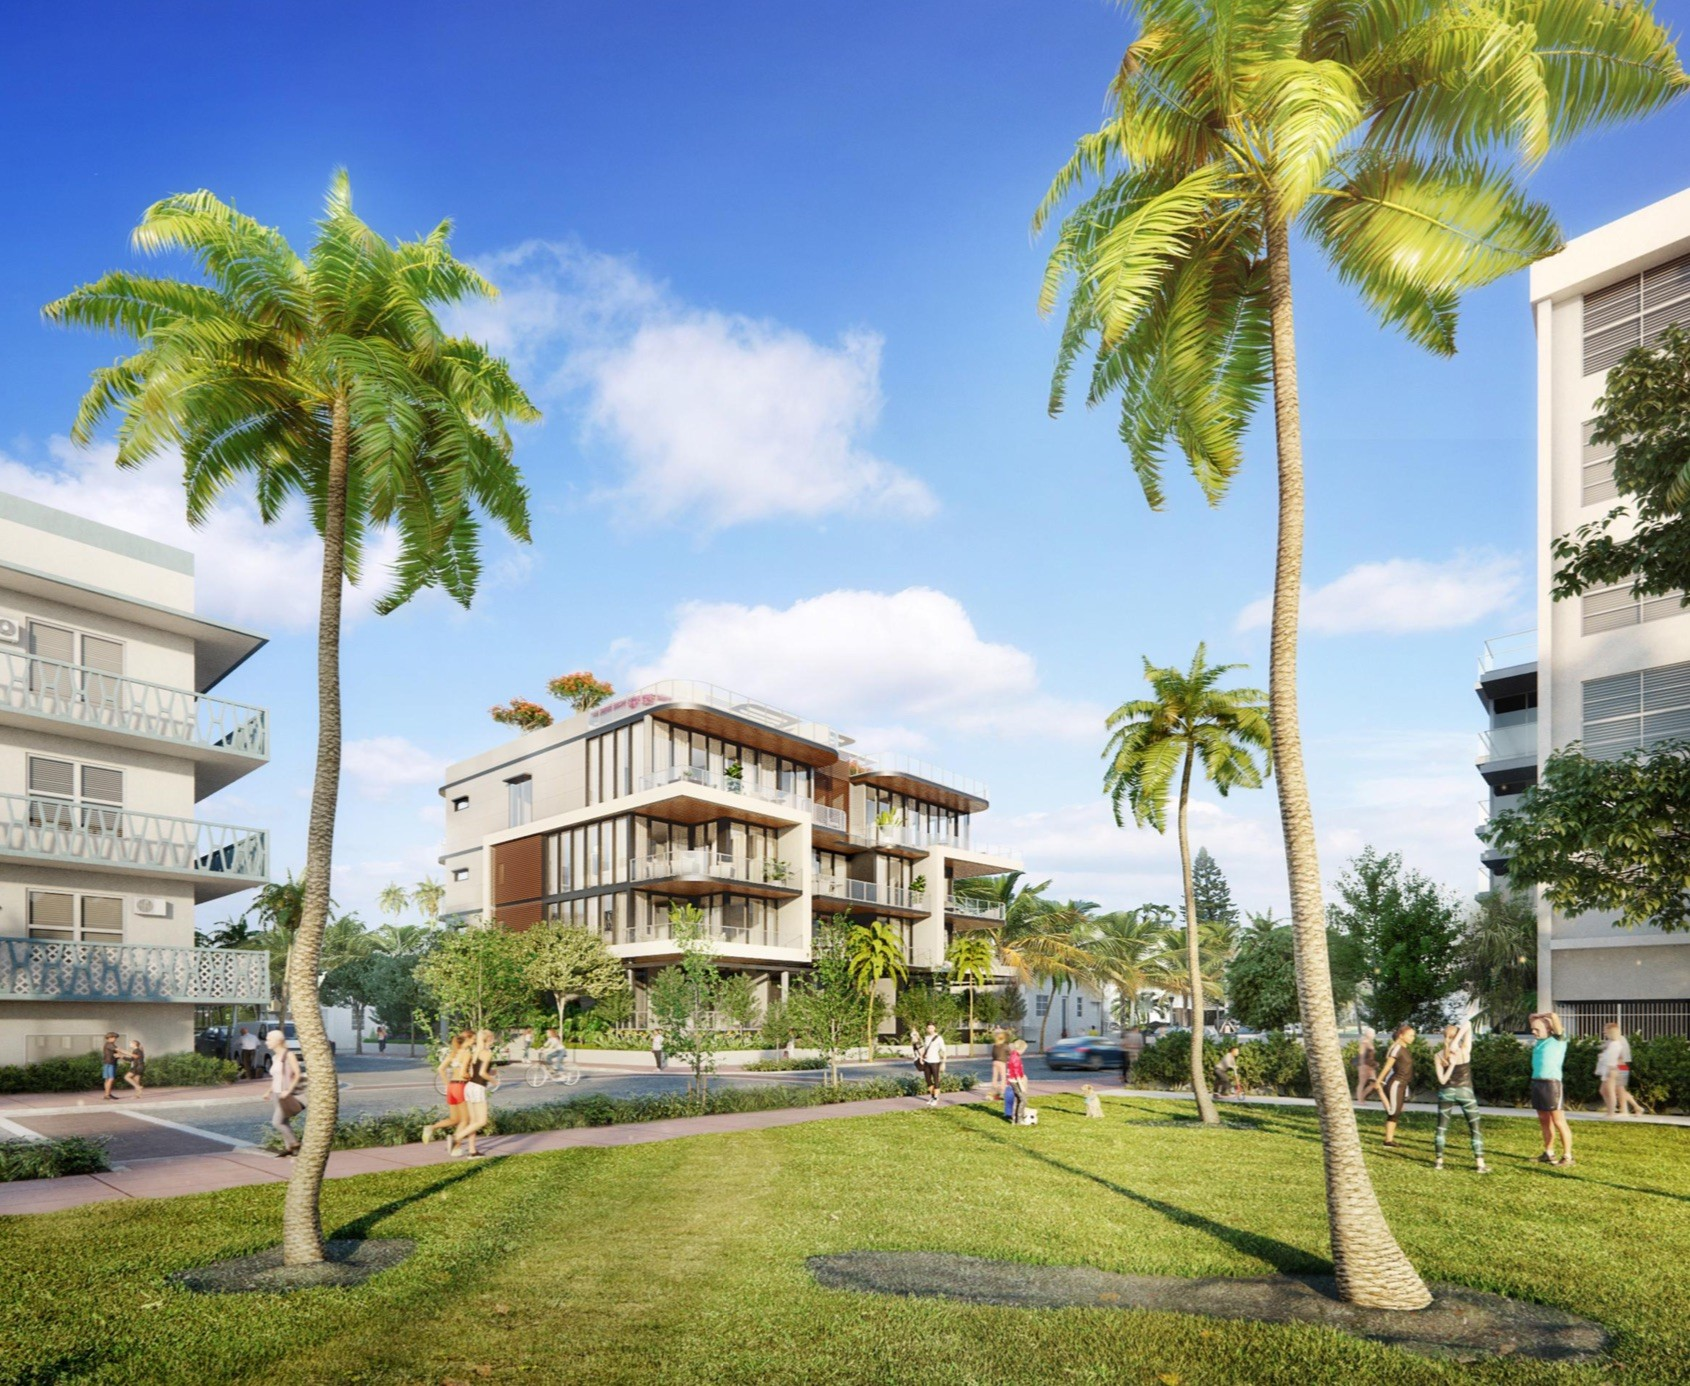 Brazilian Billionaire Jose Isaac Peres Reveals Plans For 312 Ocean Park In South-Of-Fifth